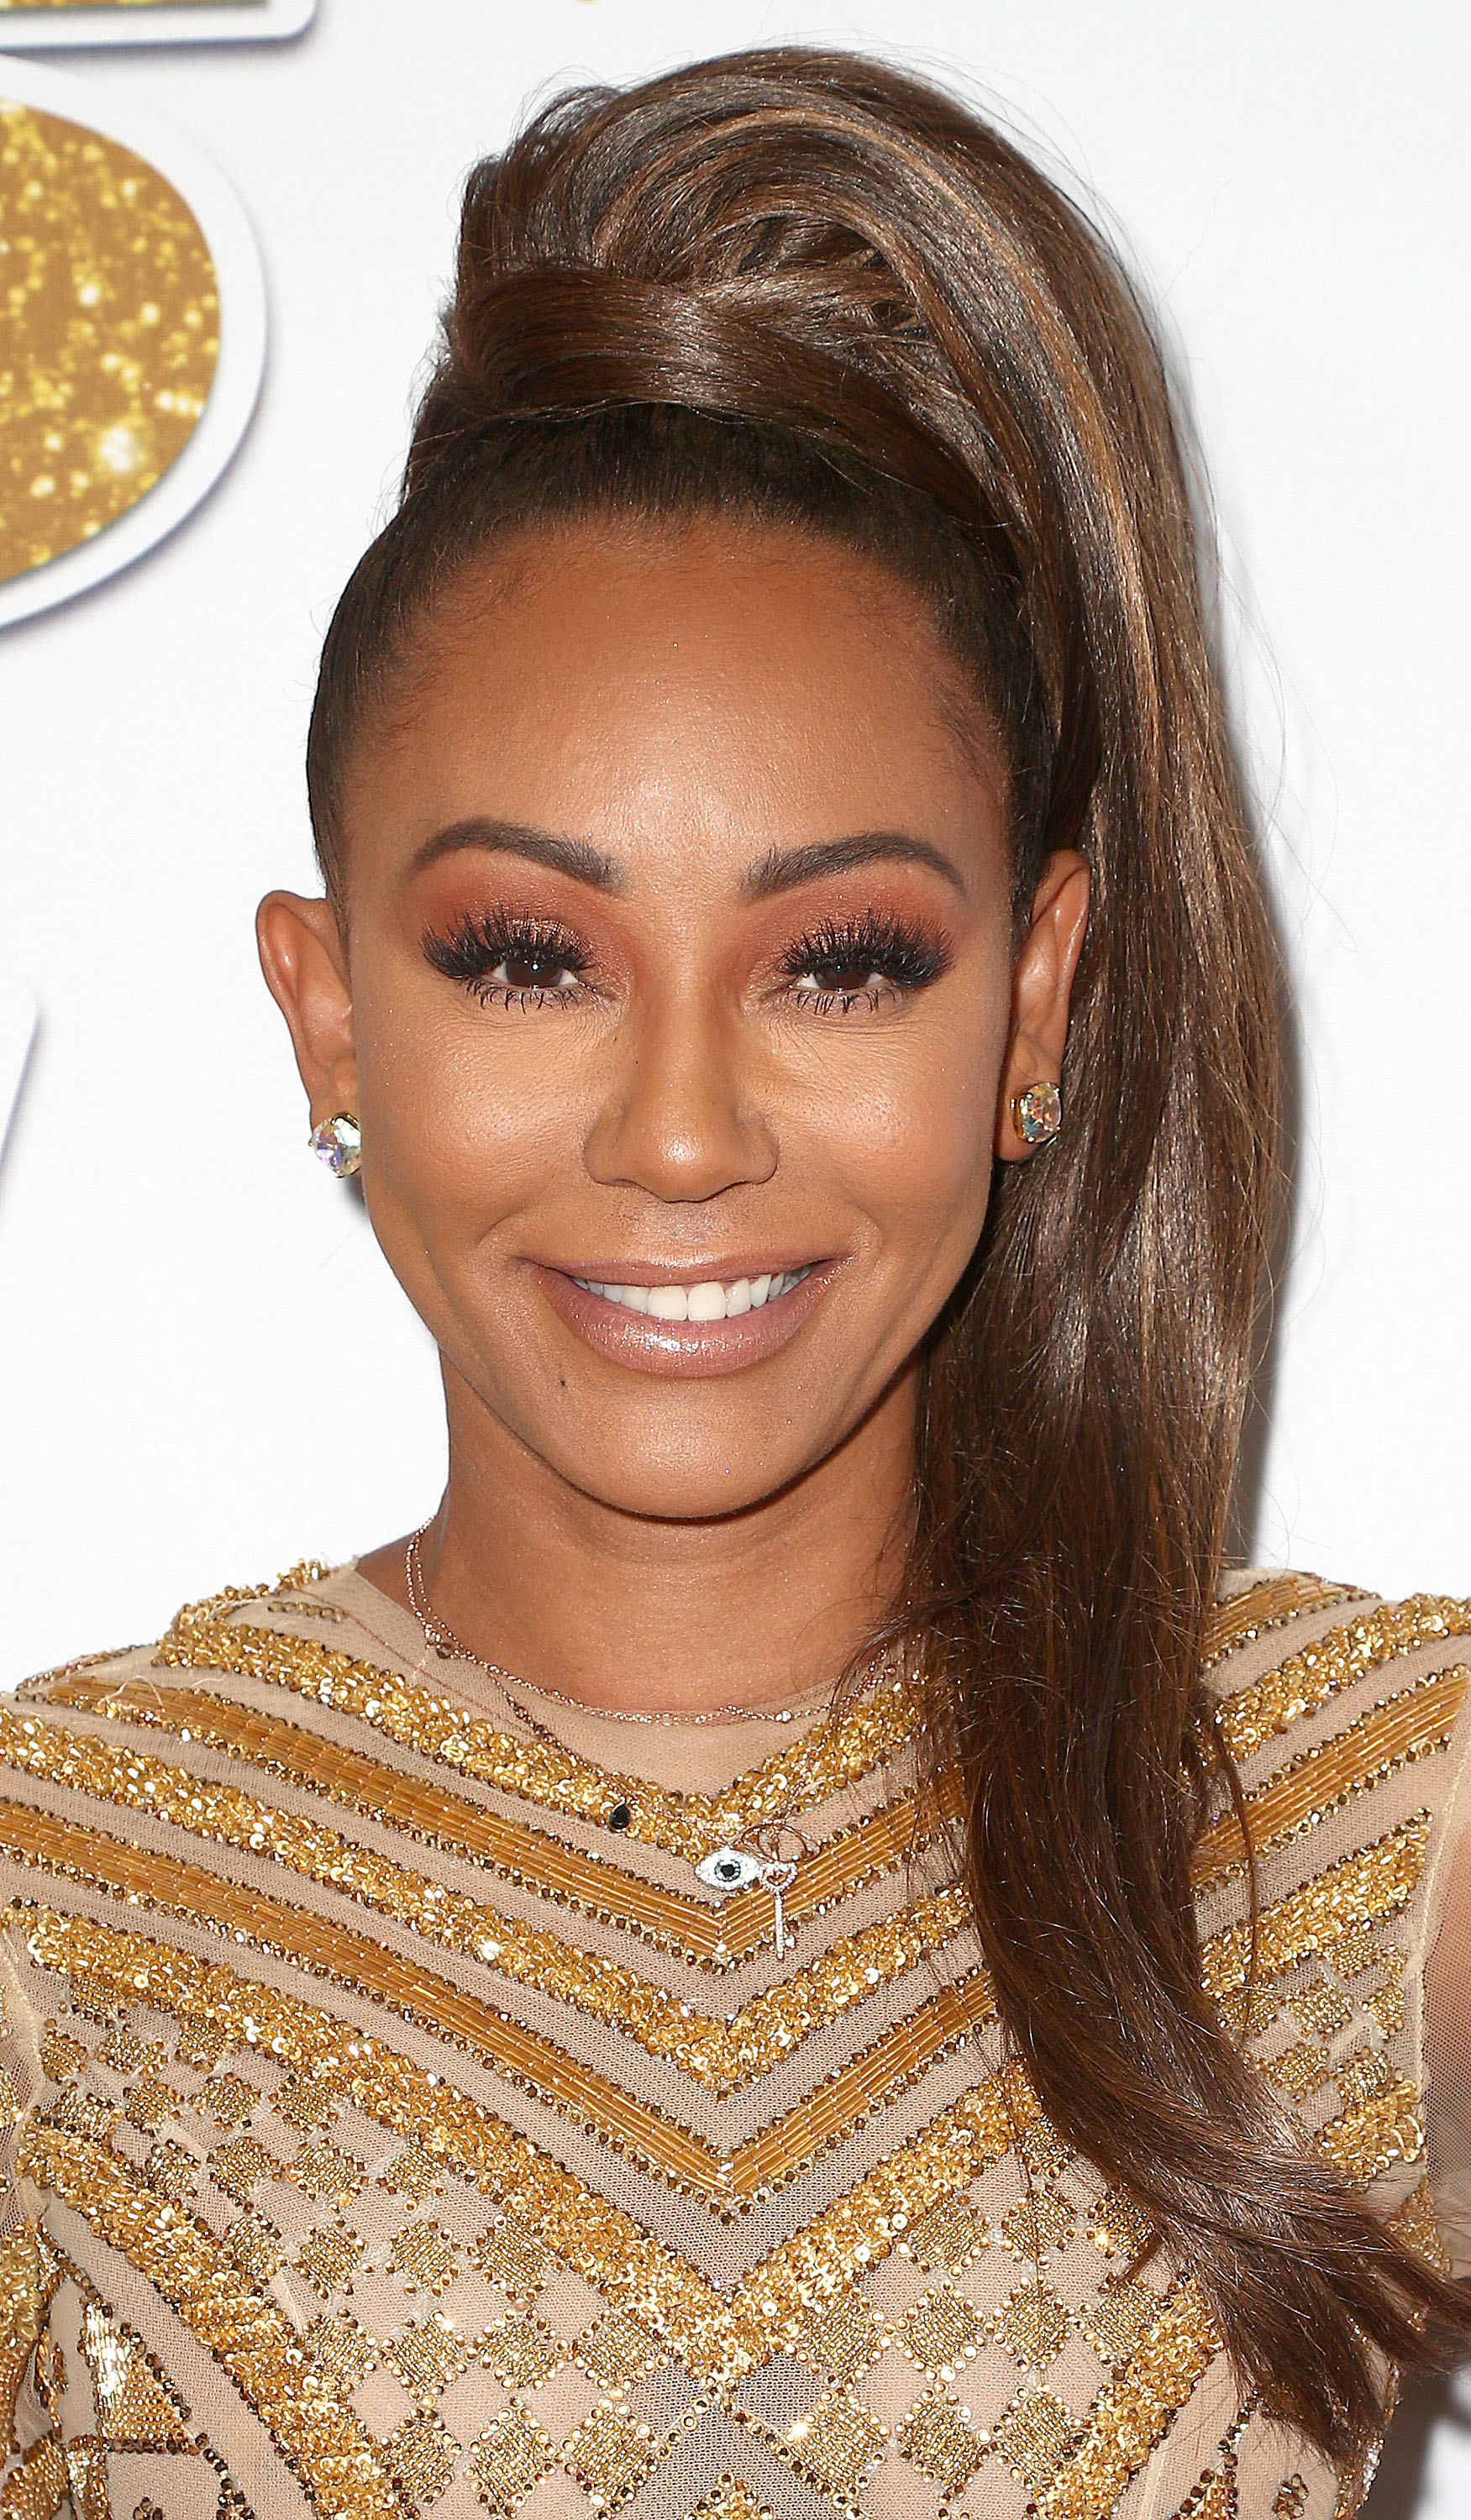 'Spice Girl' Mel B (Source: Getty Images)